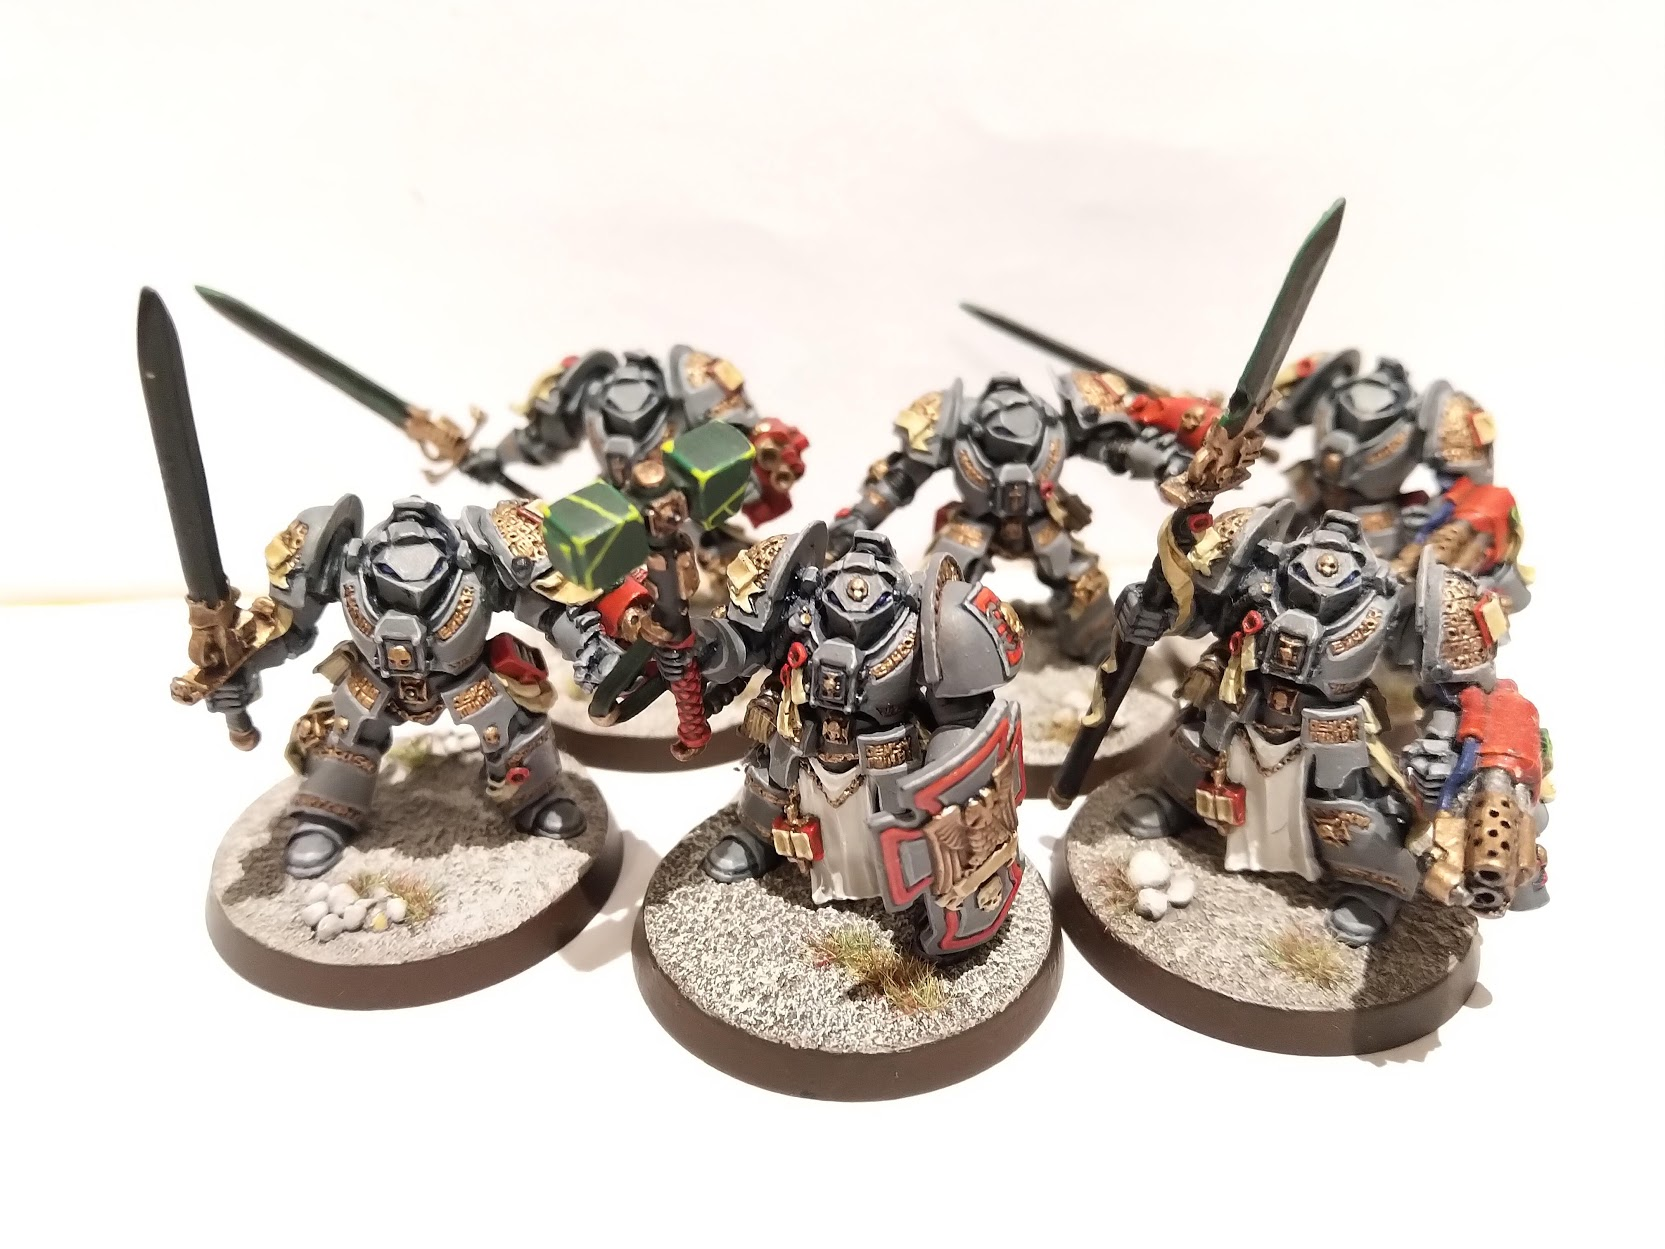 Grey Knight Terminators Credit: Lungboy